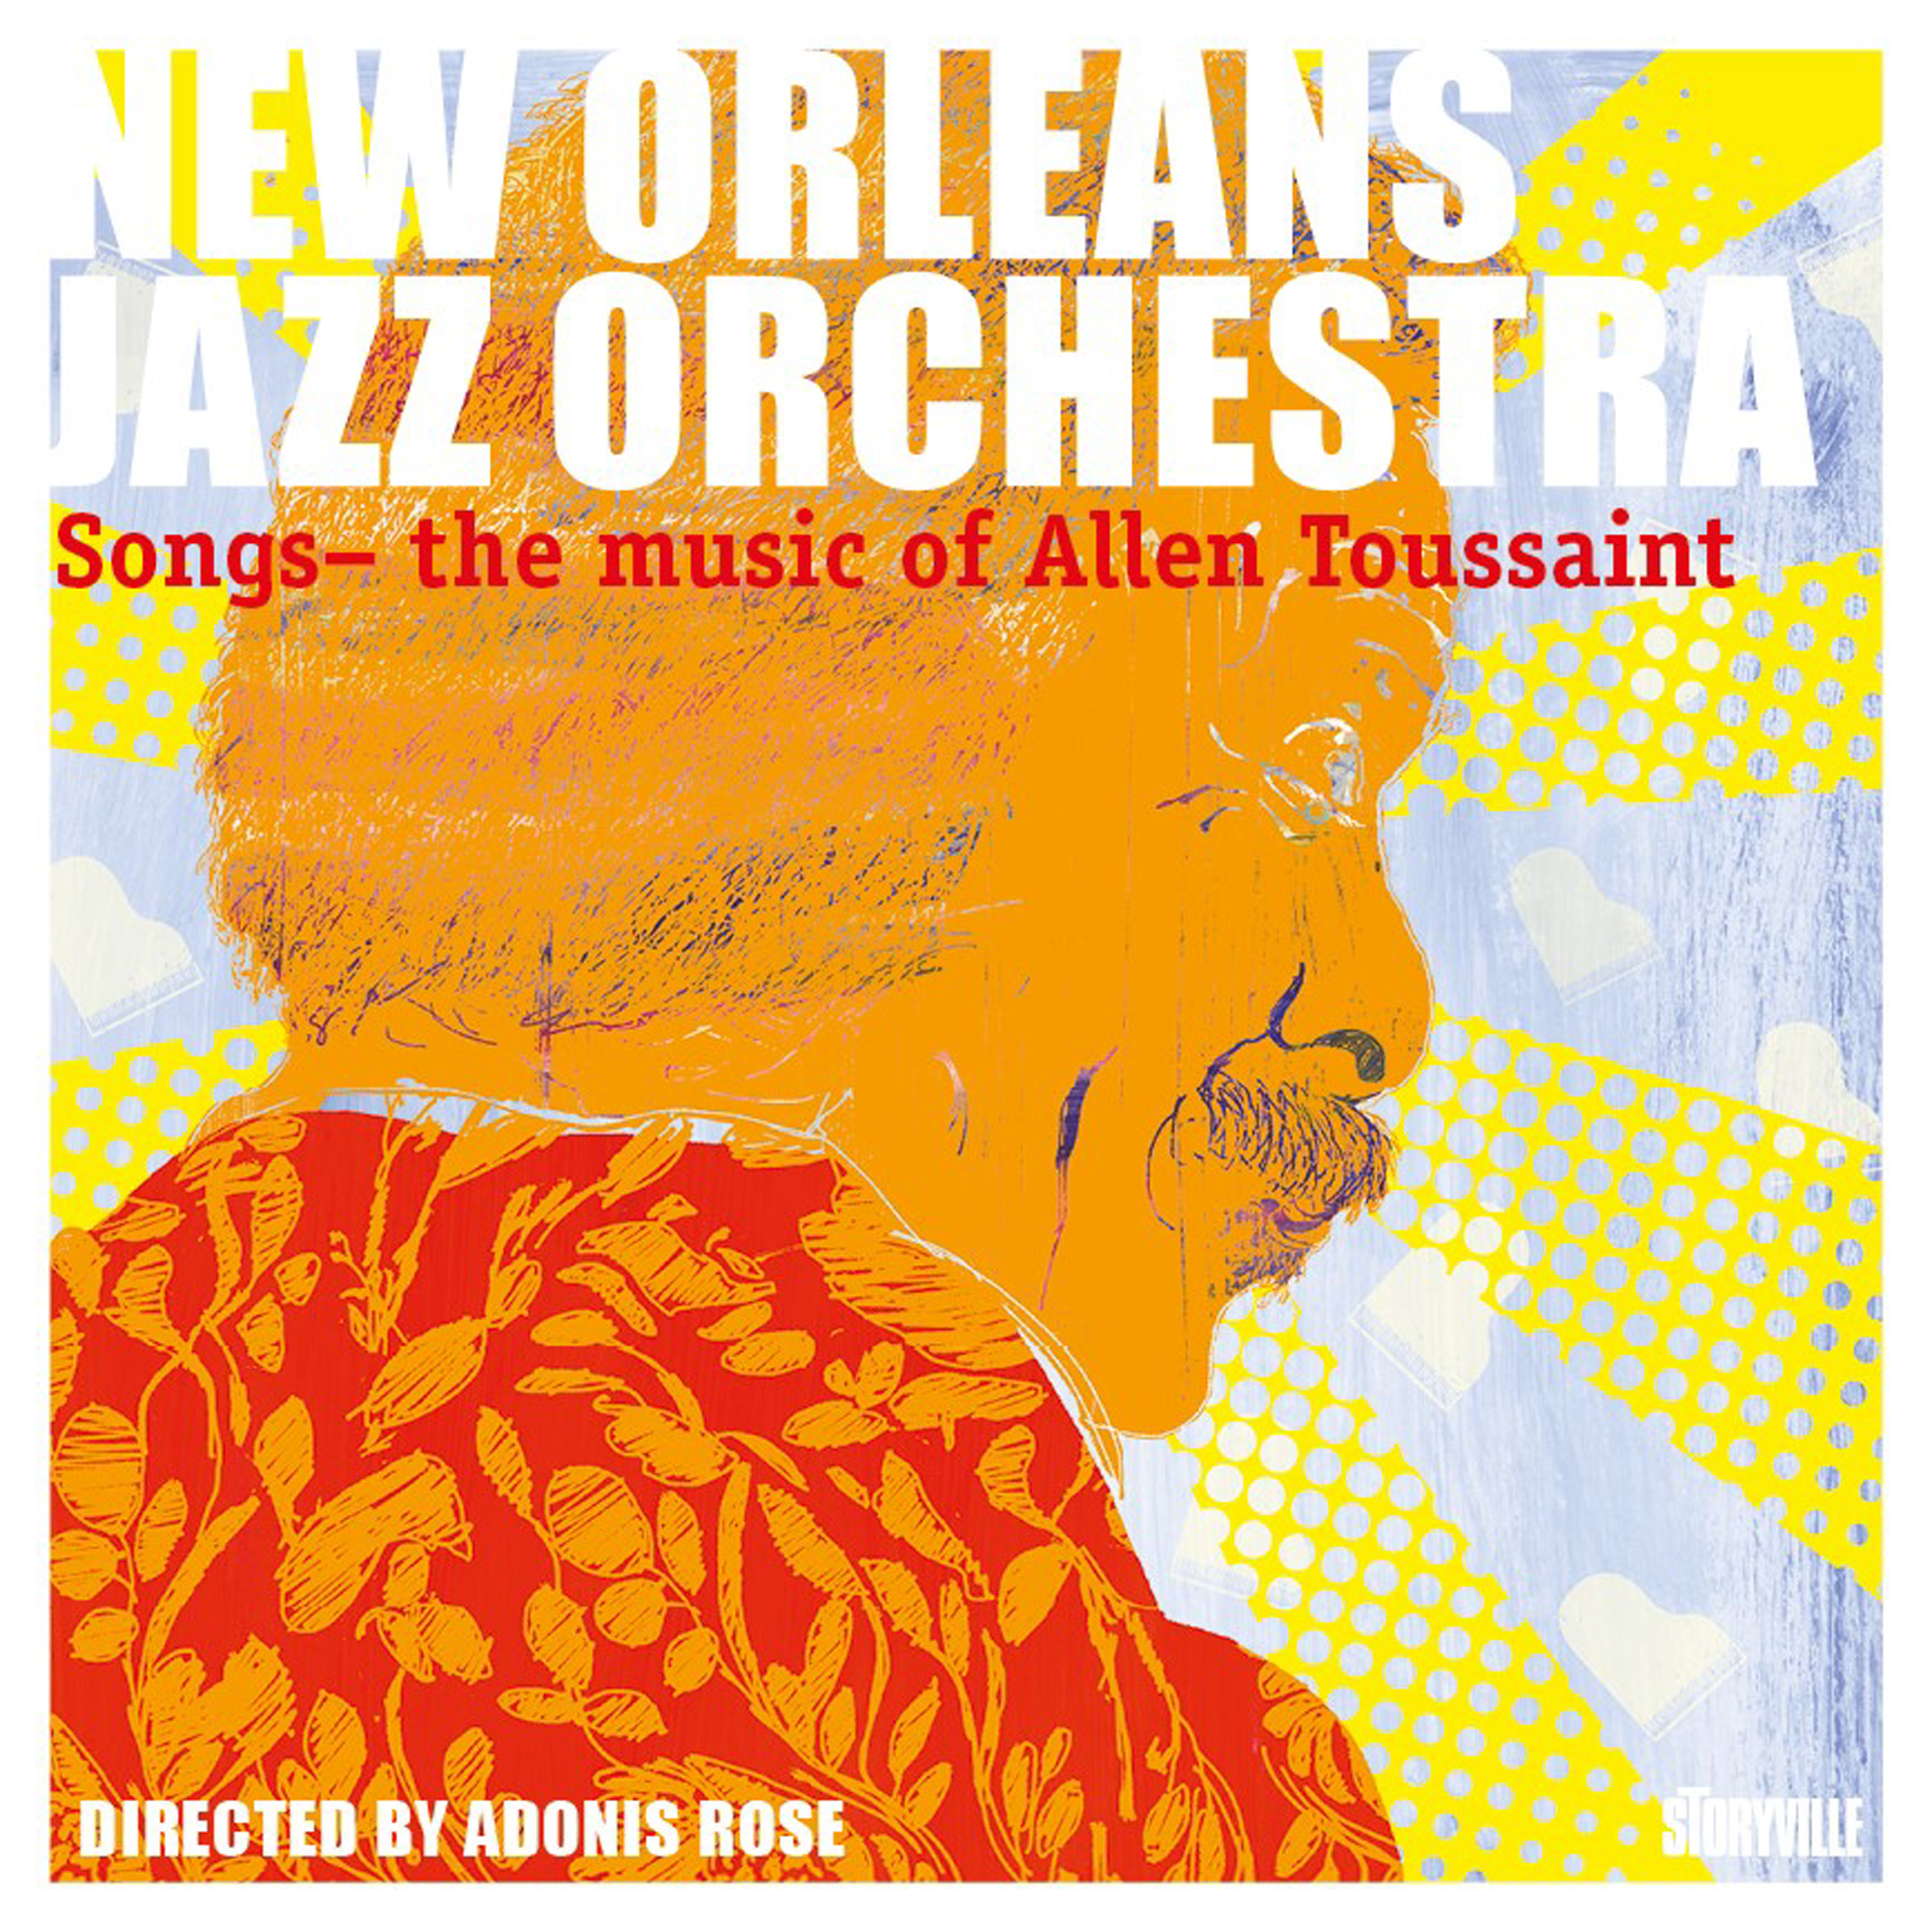 NEW ORLEANS JAZZ ORCHESTRA - Music of Allen Toussaint cover